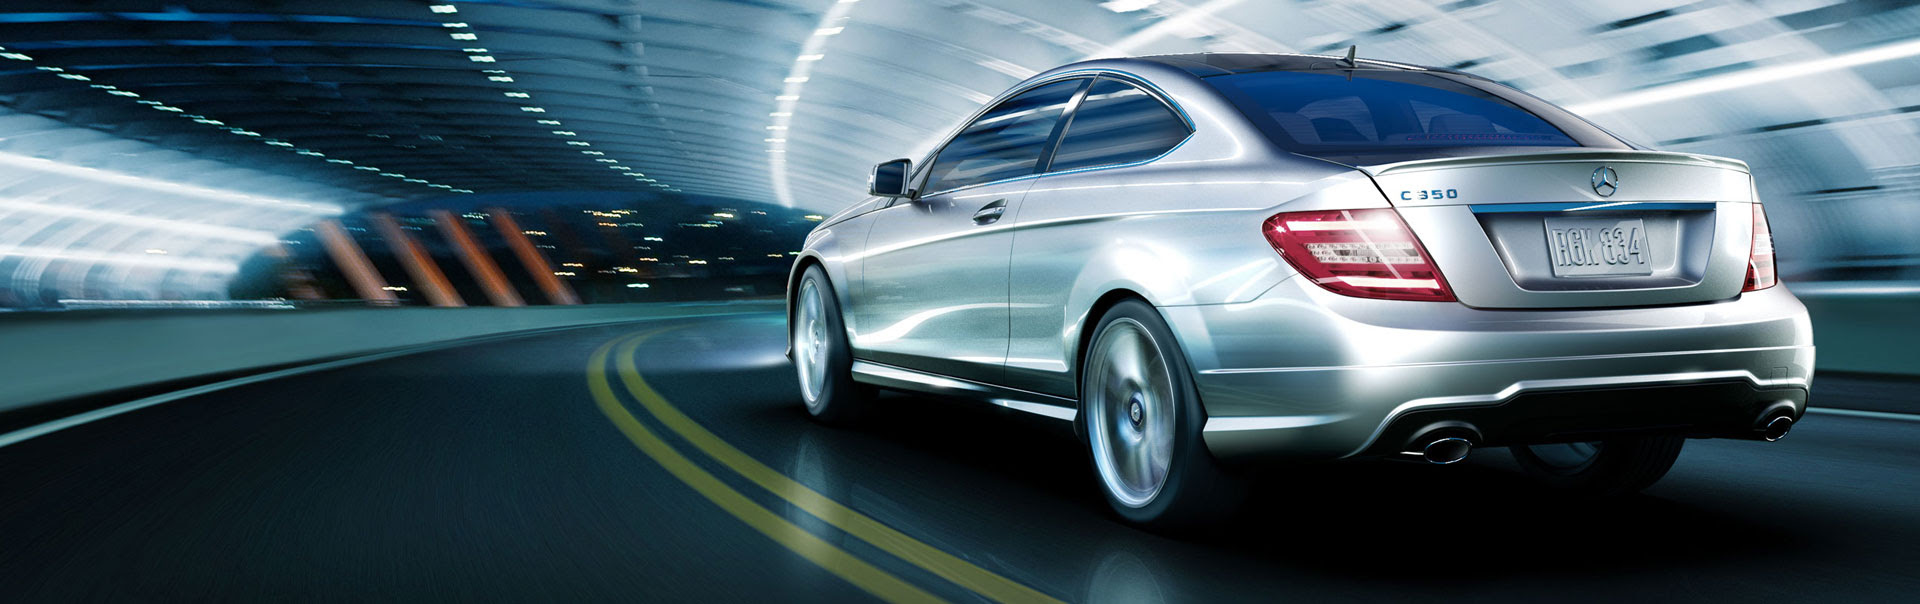 Mercedes-Benz CPO Warranty Frequently Asked Question